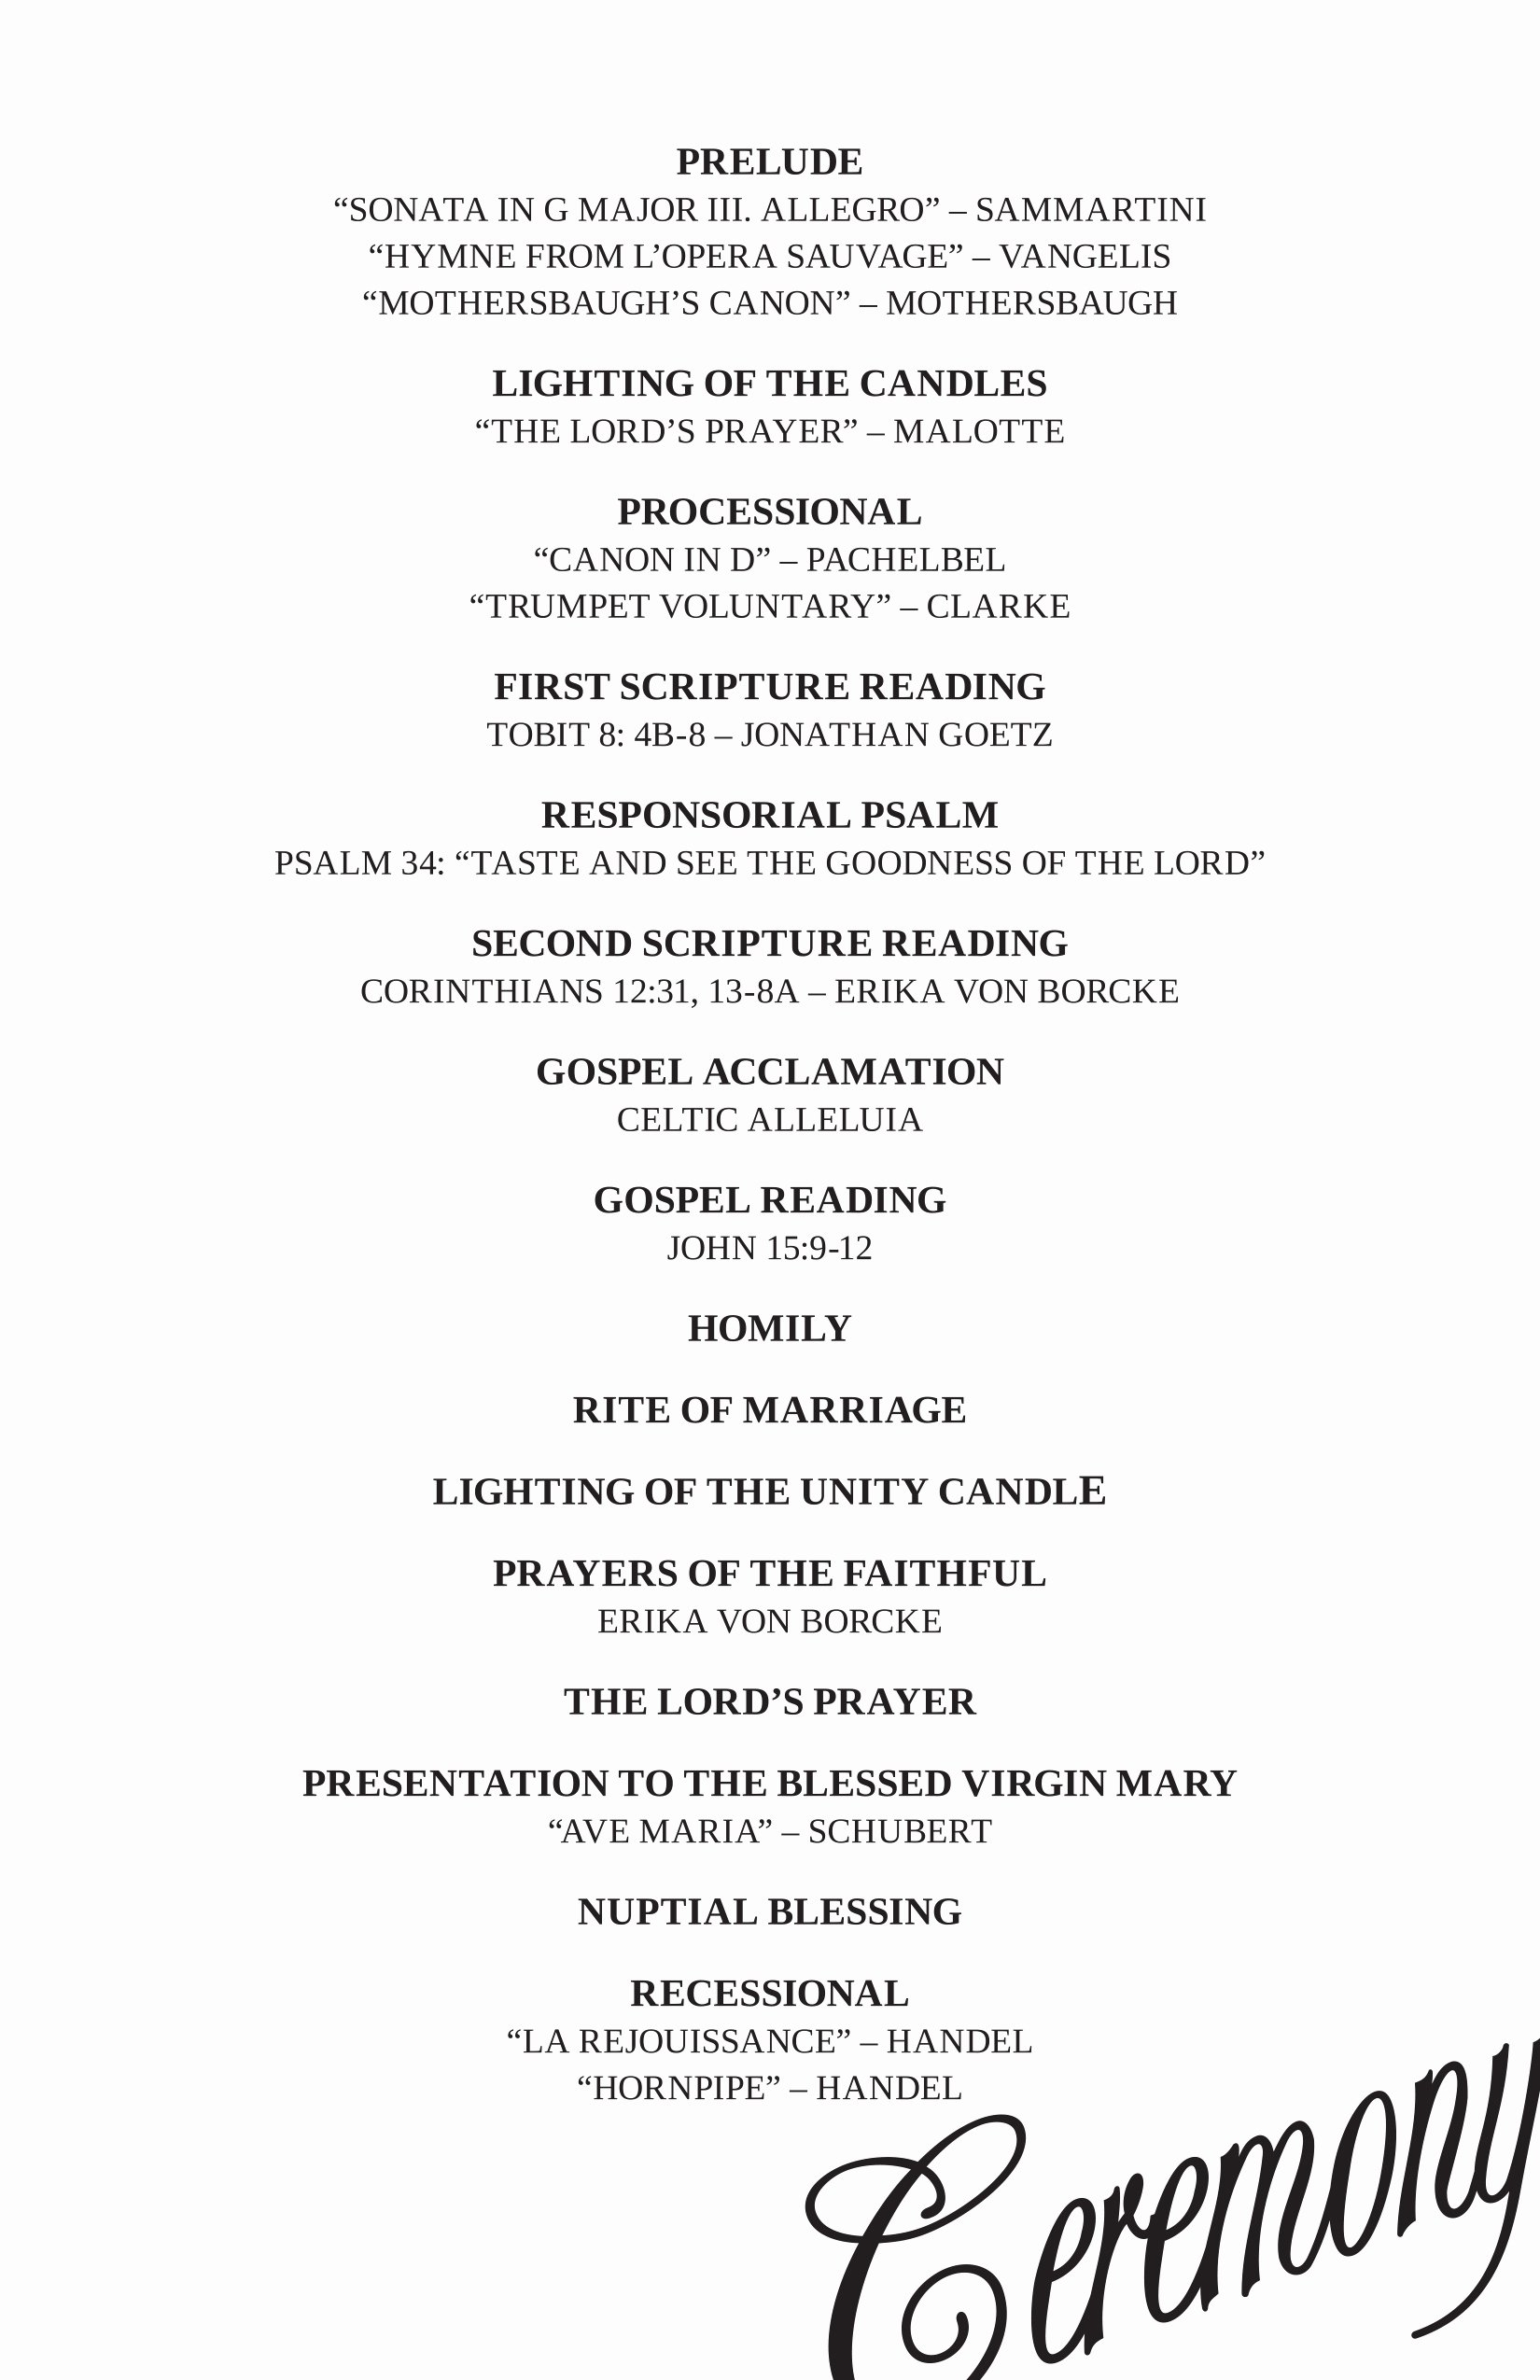 Wedding Reception Programme Template Lovely Wedding Reception Program Ideas Wedding Decor Ideas